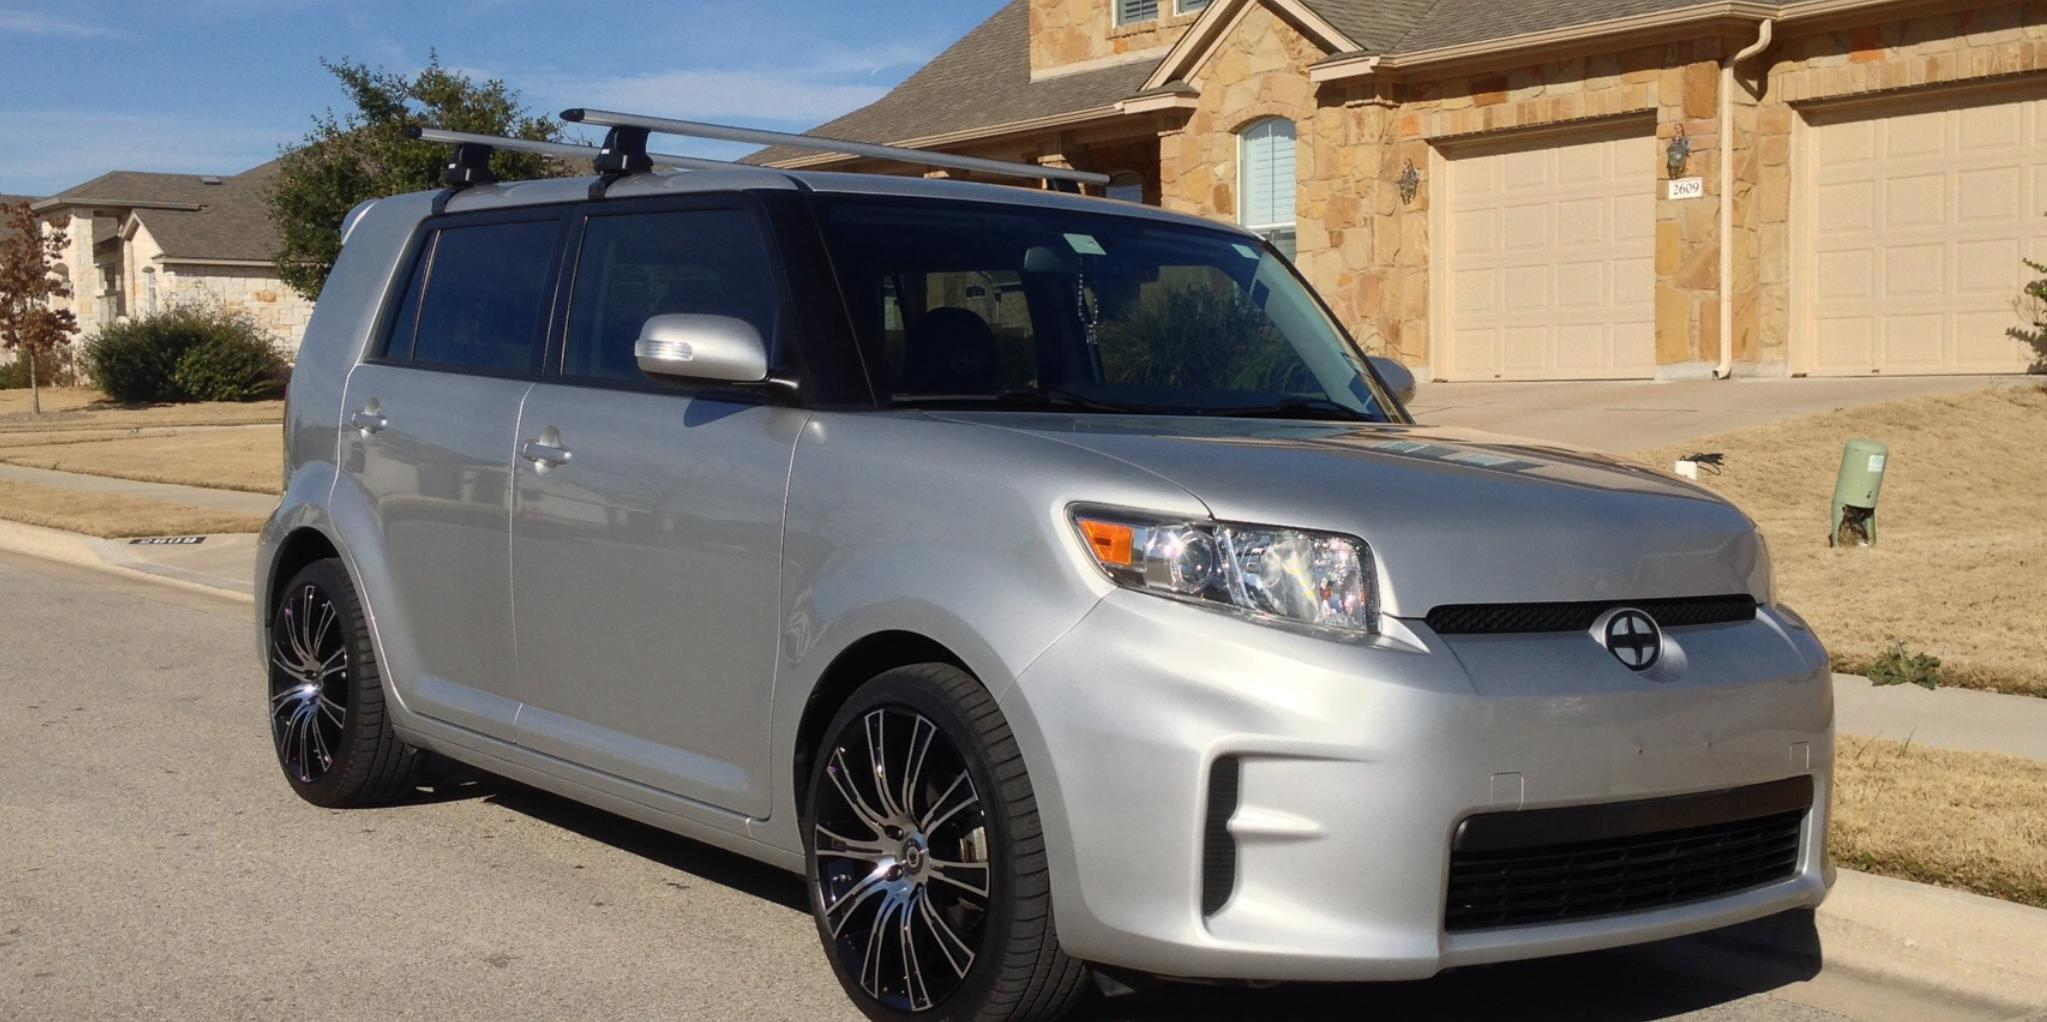 idano 2012 Scion xB